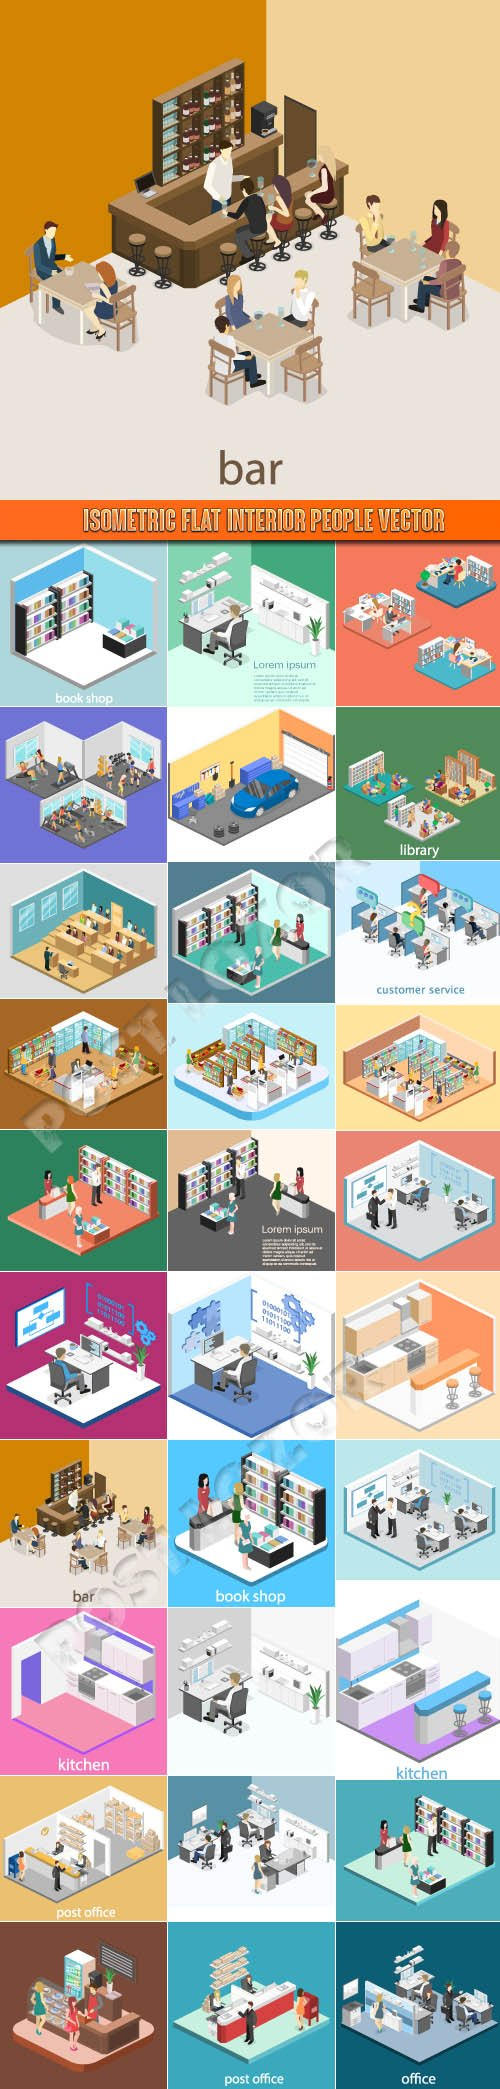 Isometric flat interior people vector